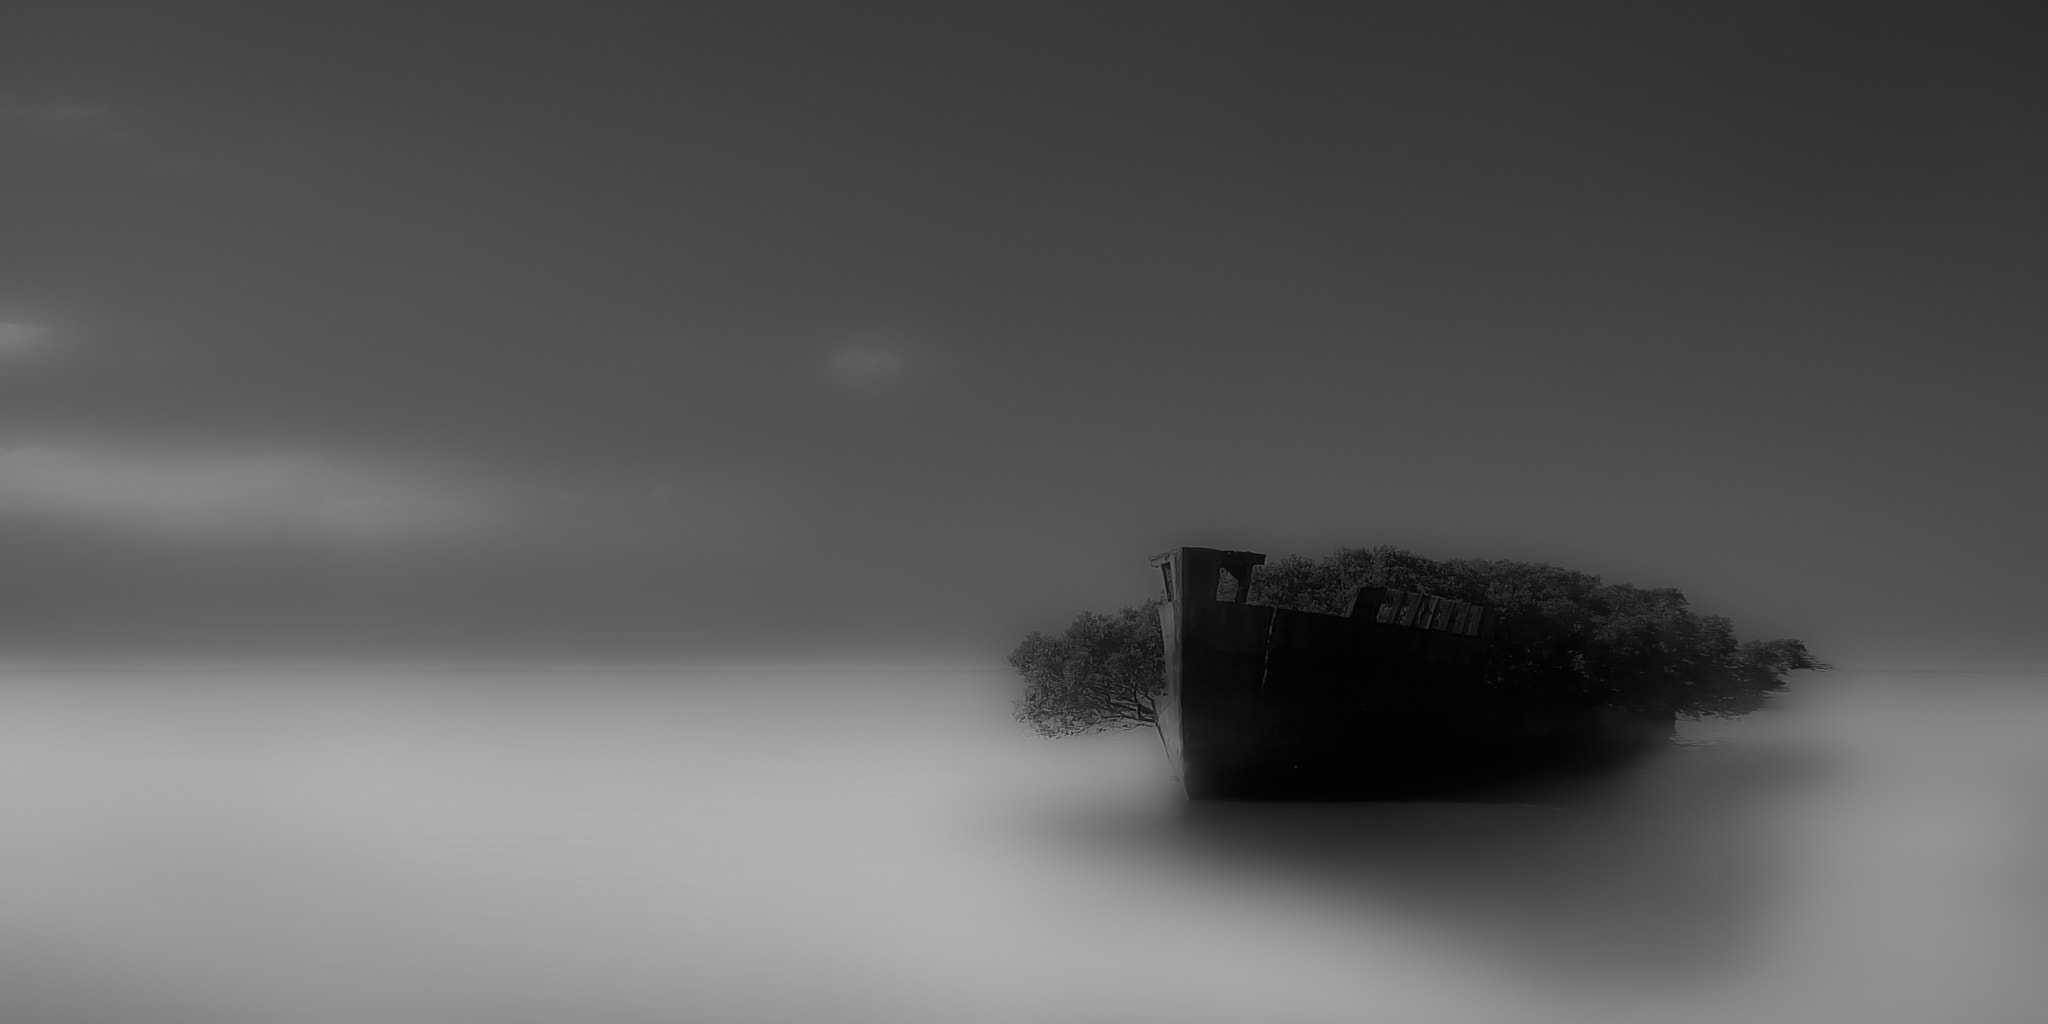 Photograph Ghost Ship by Jong Shin Lee on 500px